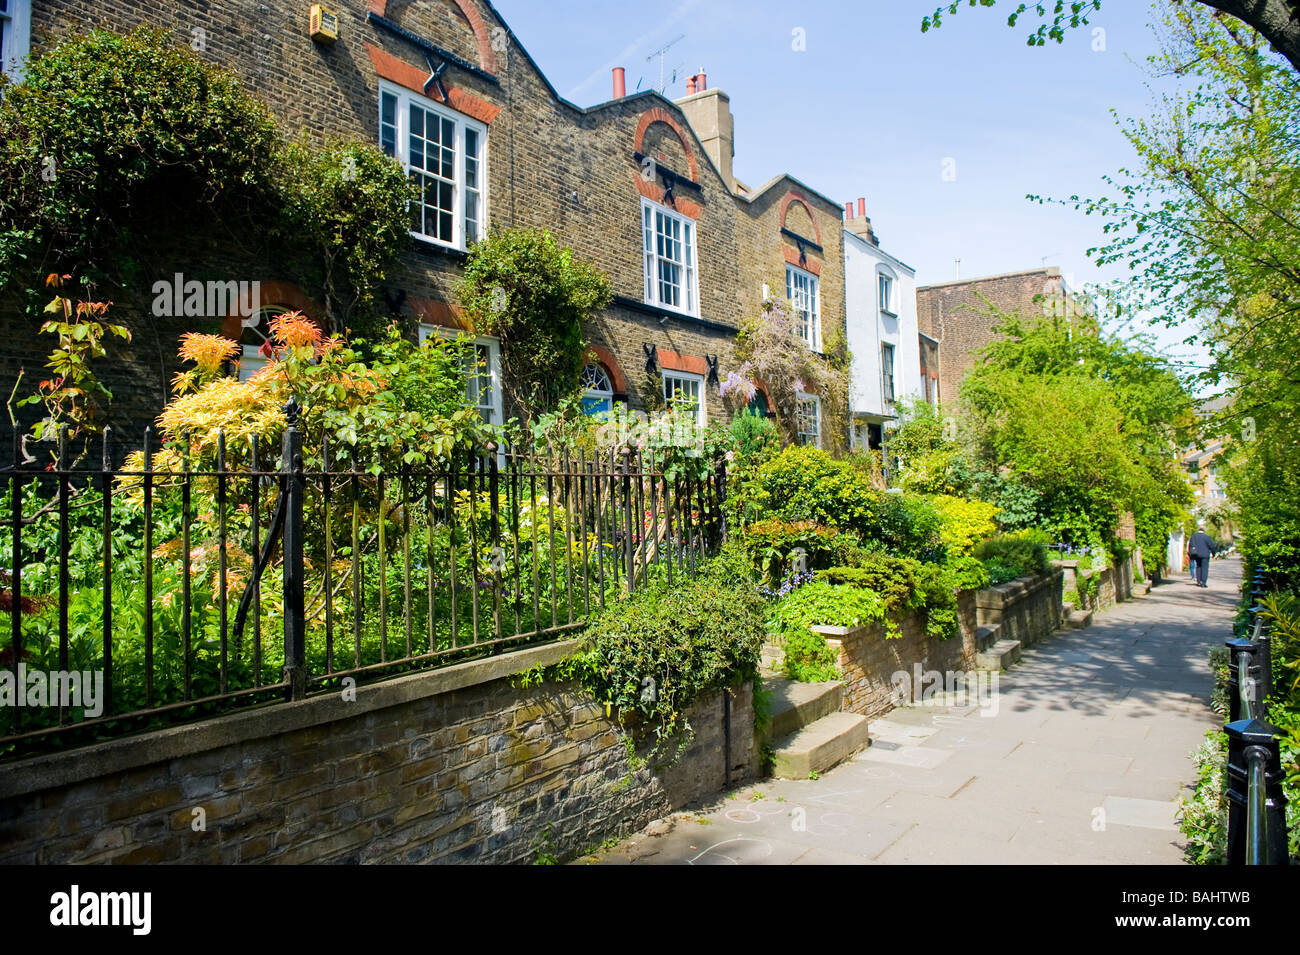 Spring in Hampstead Village , picturesque old cottages & gardens in Flask Walk - Stock Image